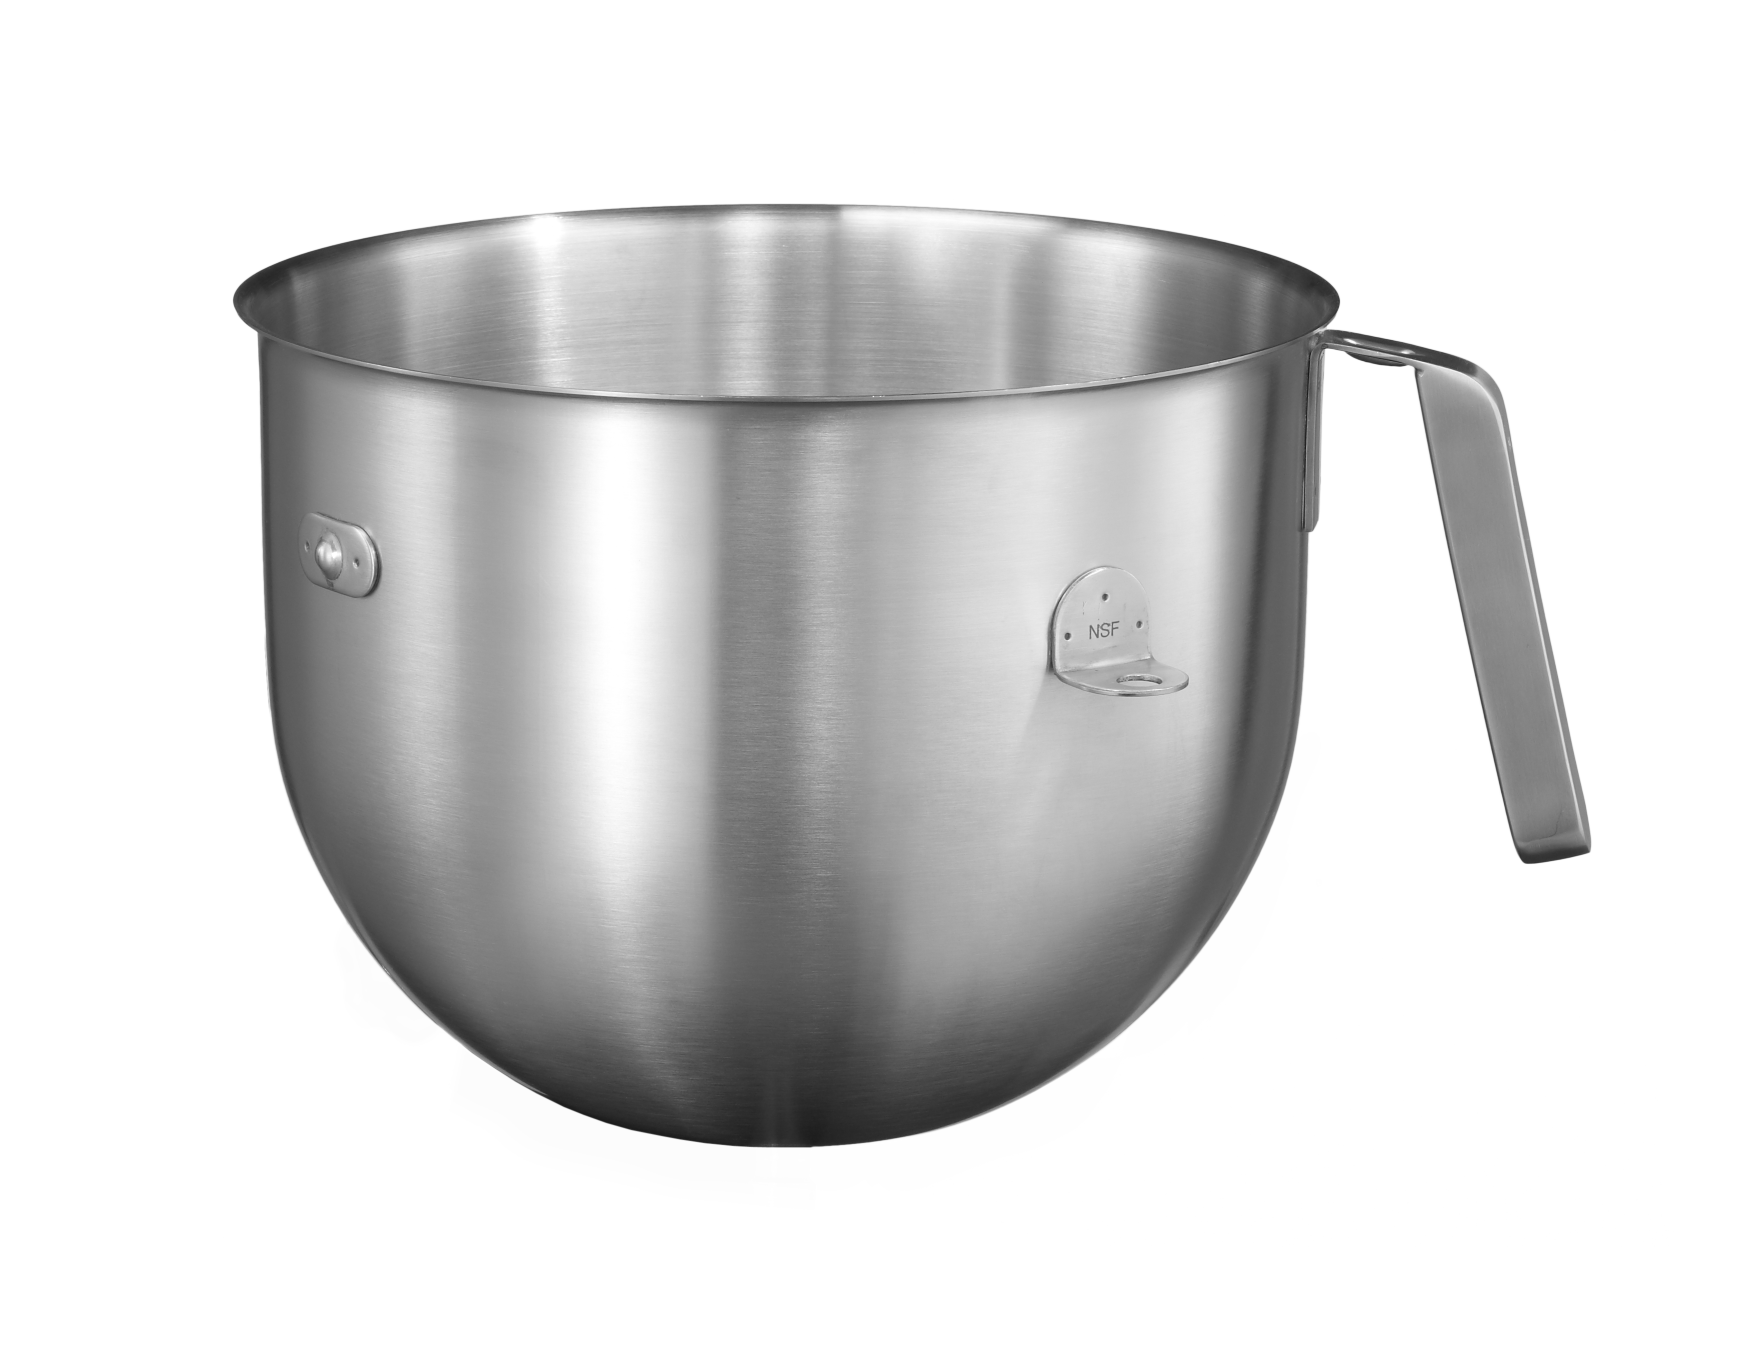 KitchenAid 6.9L Stainless Steel Bowl With Handle (5KC7SB)